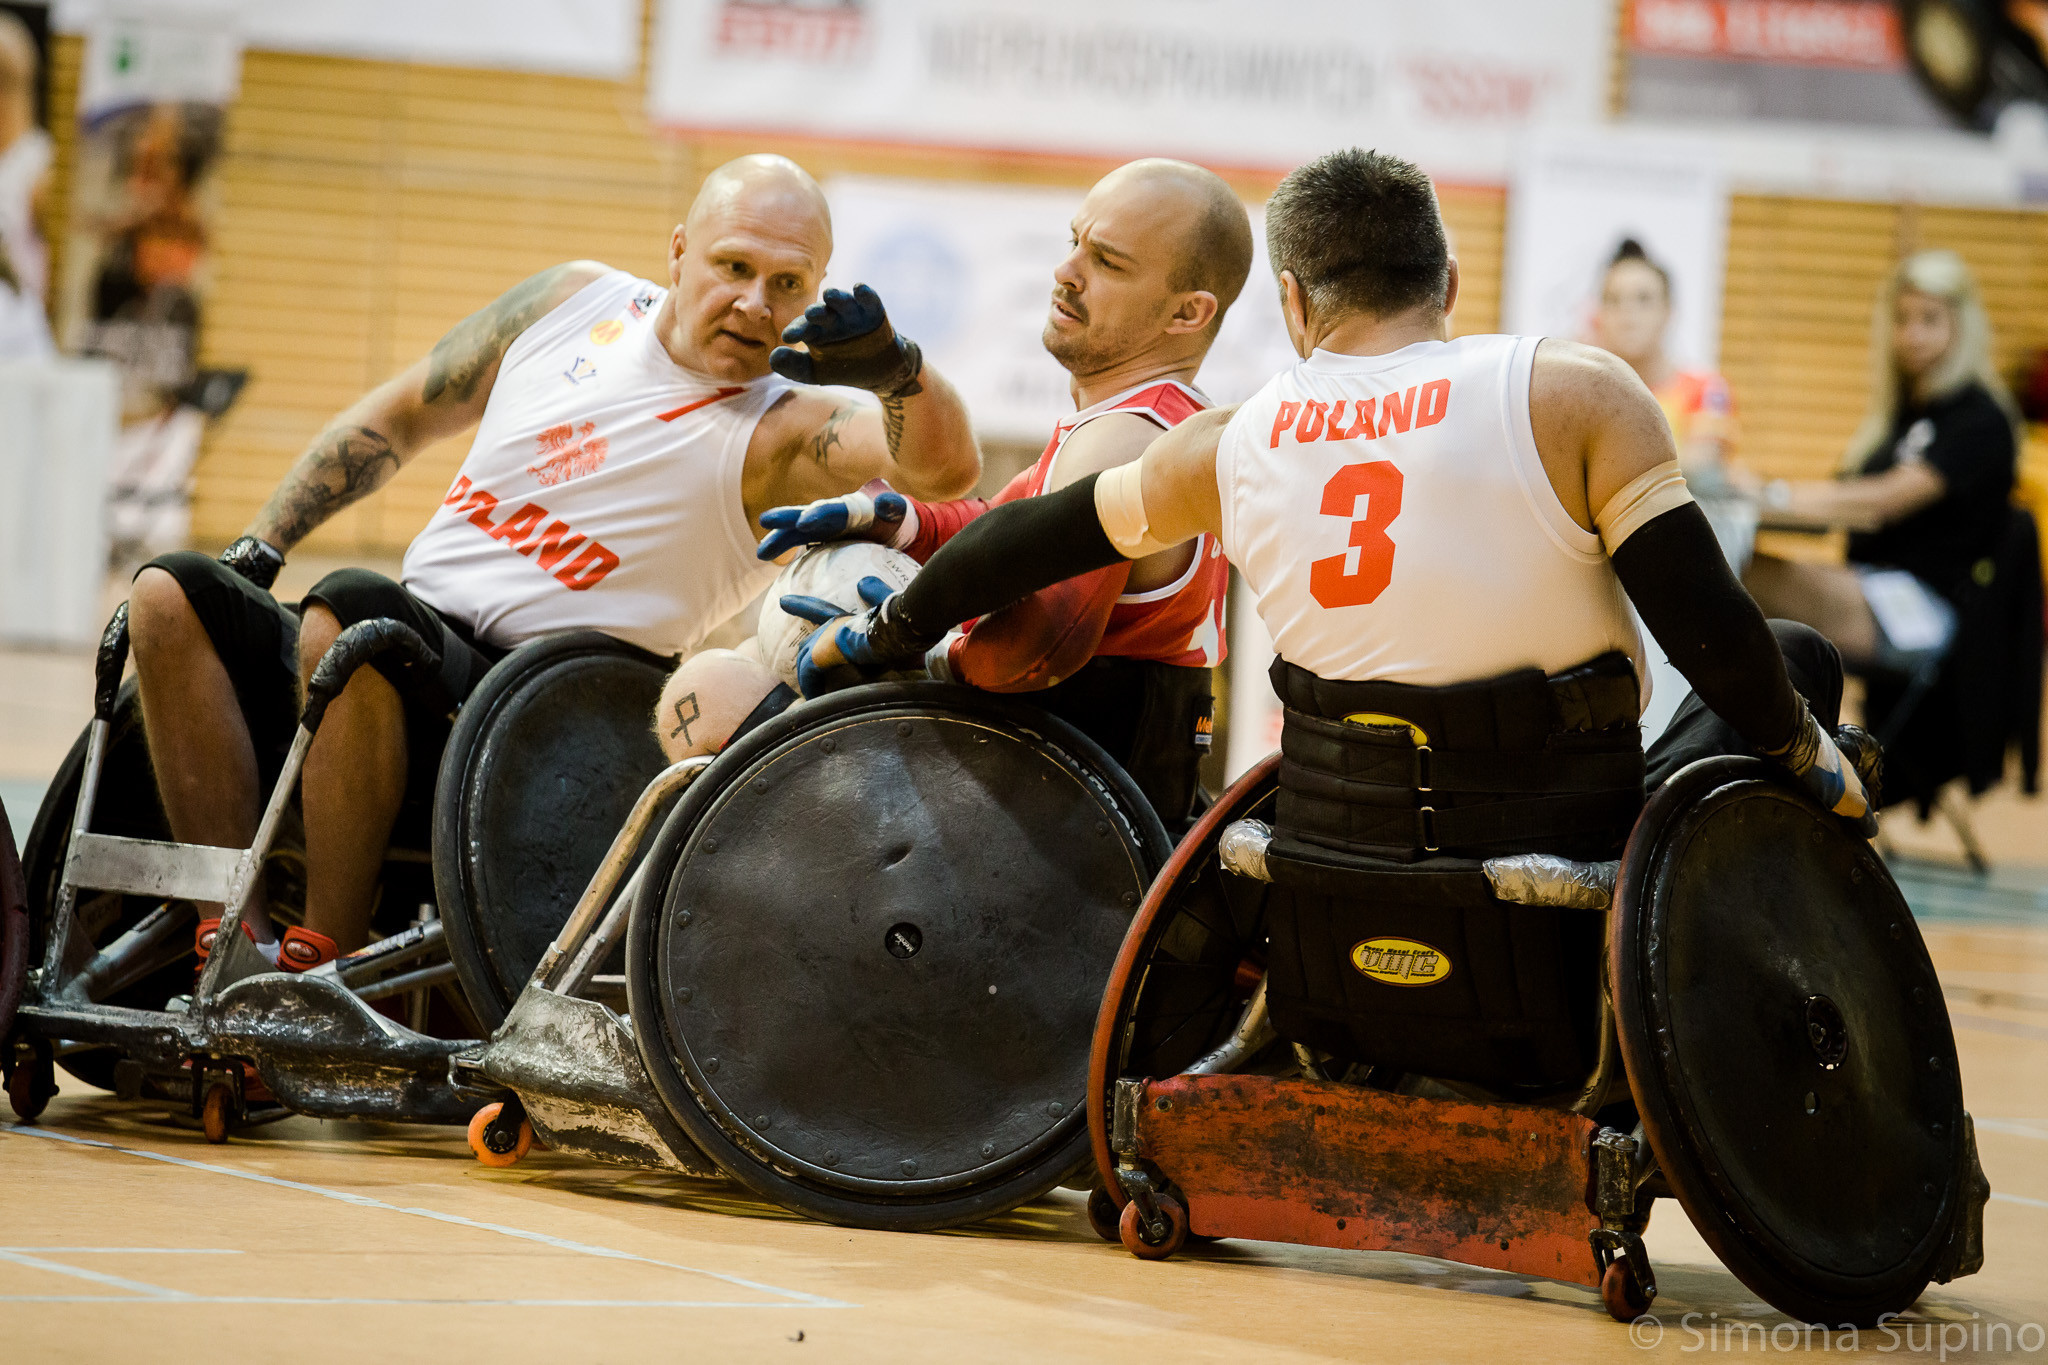 Warsaw to host 2020 IWRF European Championship Division B